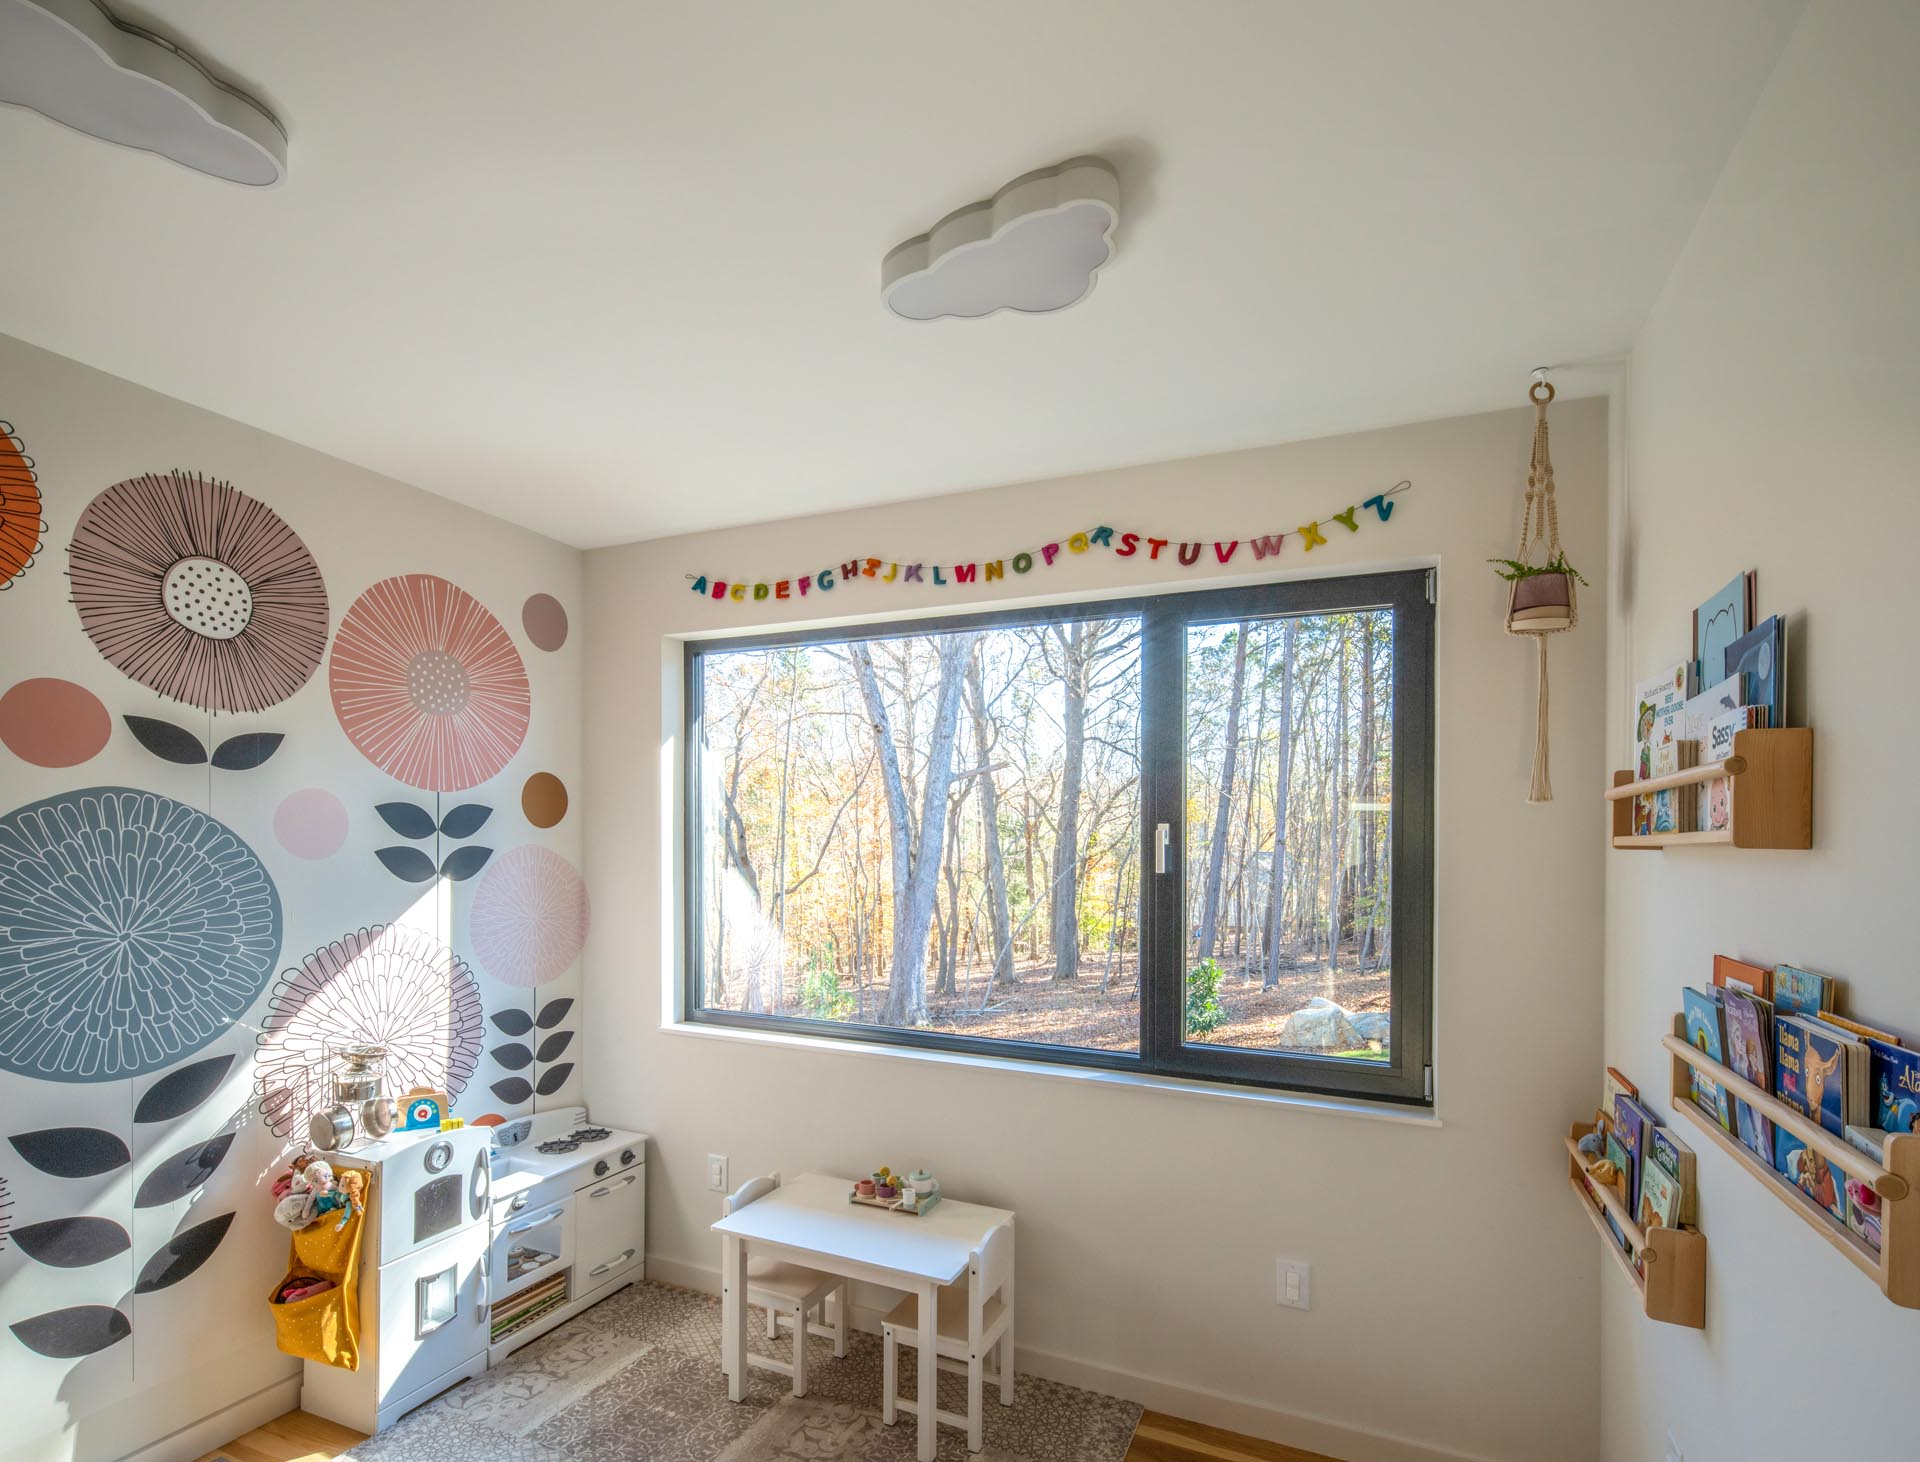 A modern playroom/nursery for the kids that they can each access from their respective bedrooms.